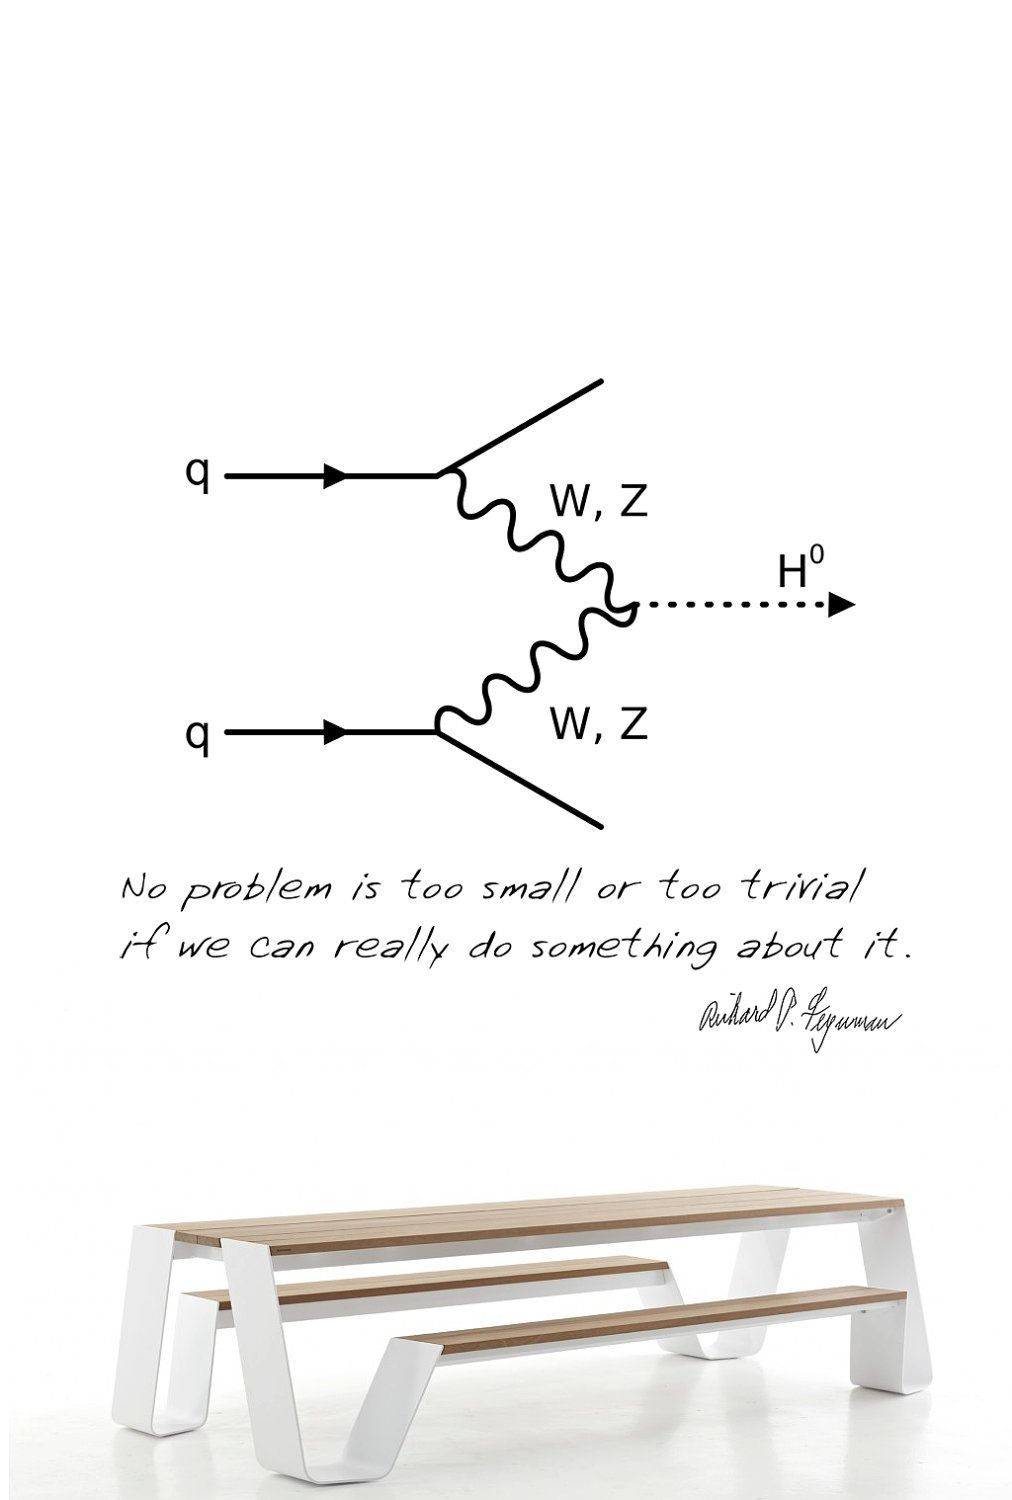 Scince Gift Physics Qed Feynman Diagram And Quote Vinyl Wall Decal Science Wall Sticker For Classroom Scientific Decor Id 121032 Feynman Diagram Vinyl Wall Decals Wall Decals